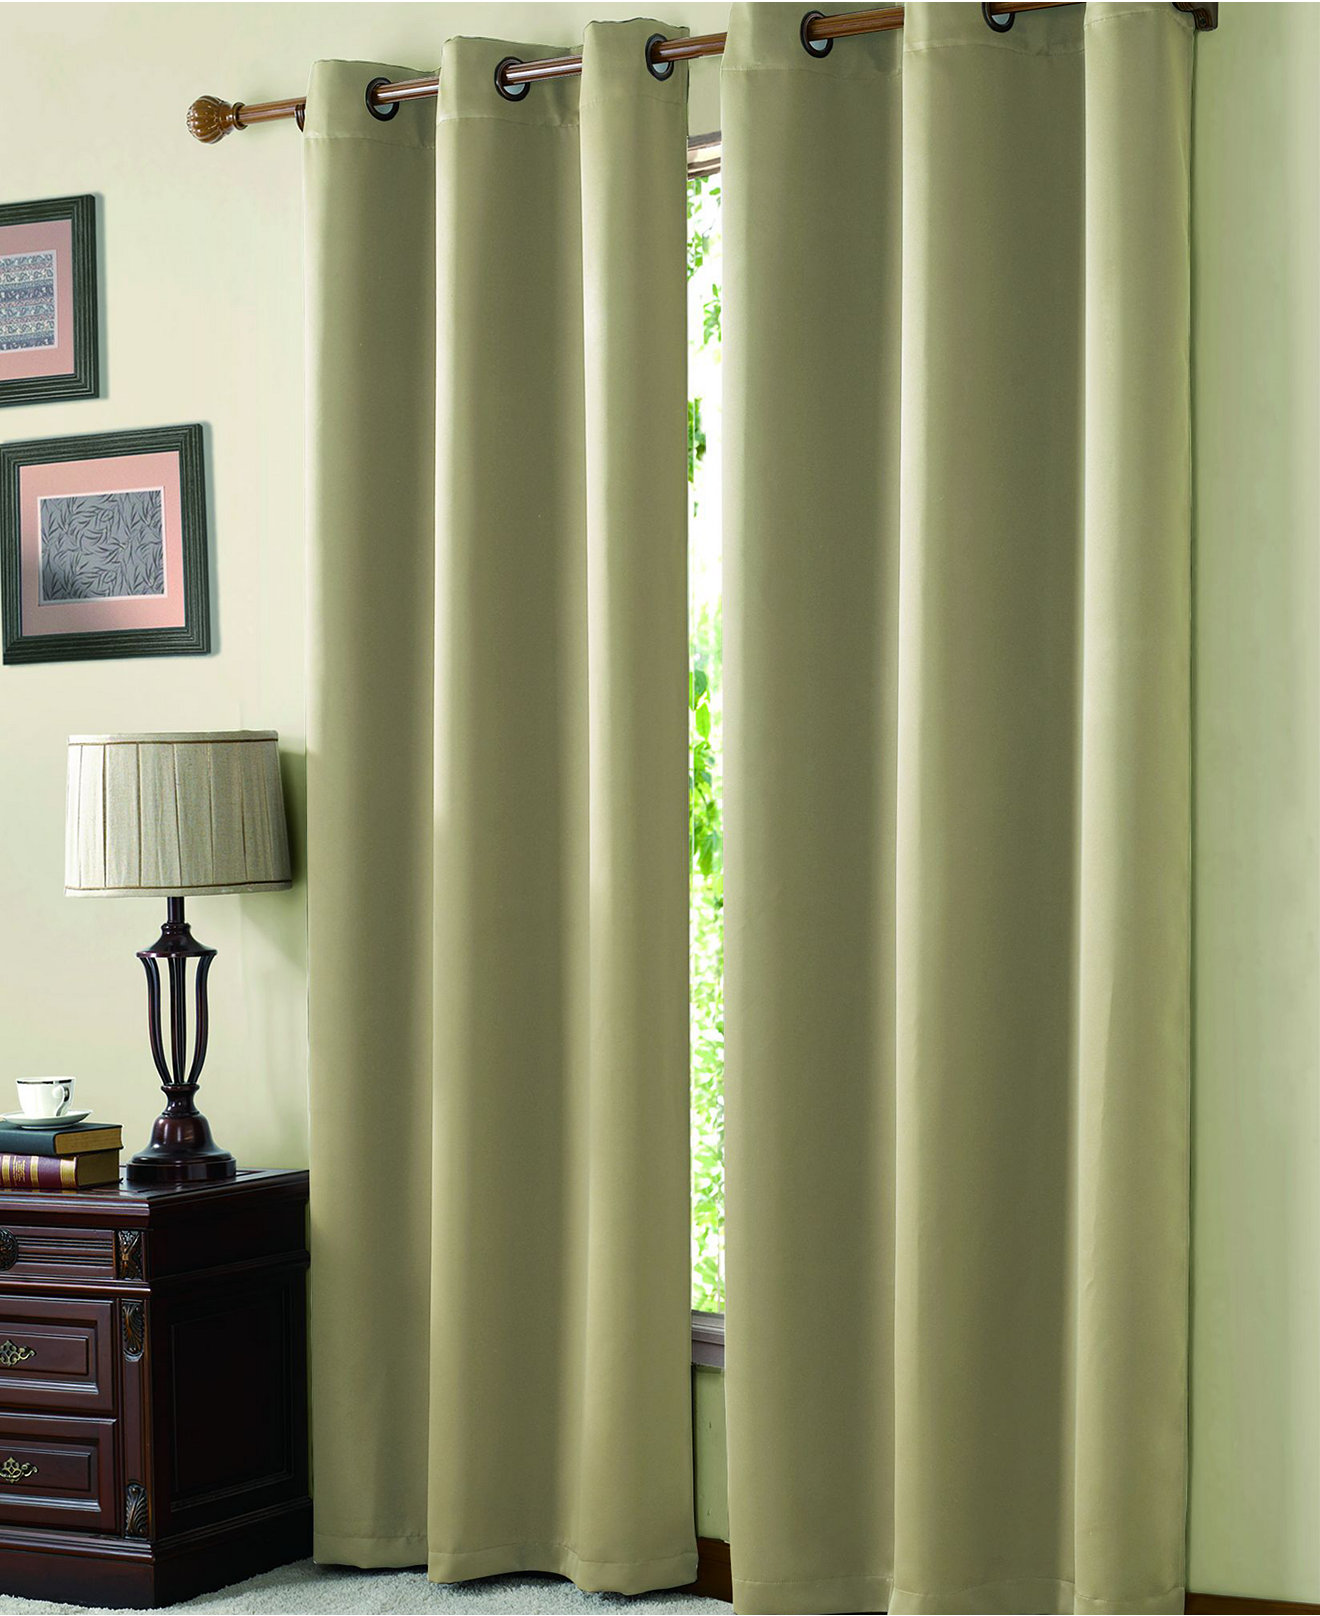 White lace curtains 63 inches - Victoria Classics Mckenzie Twill Blackout Panel Collection